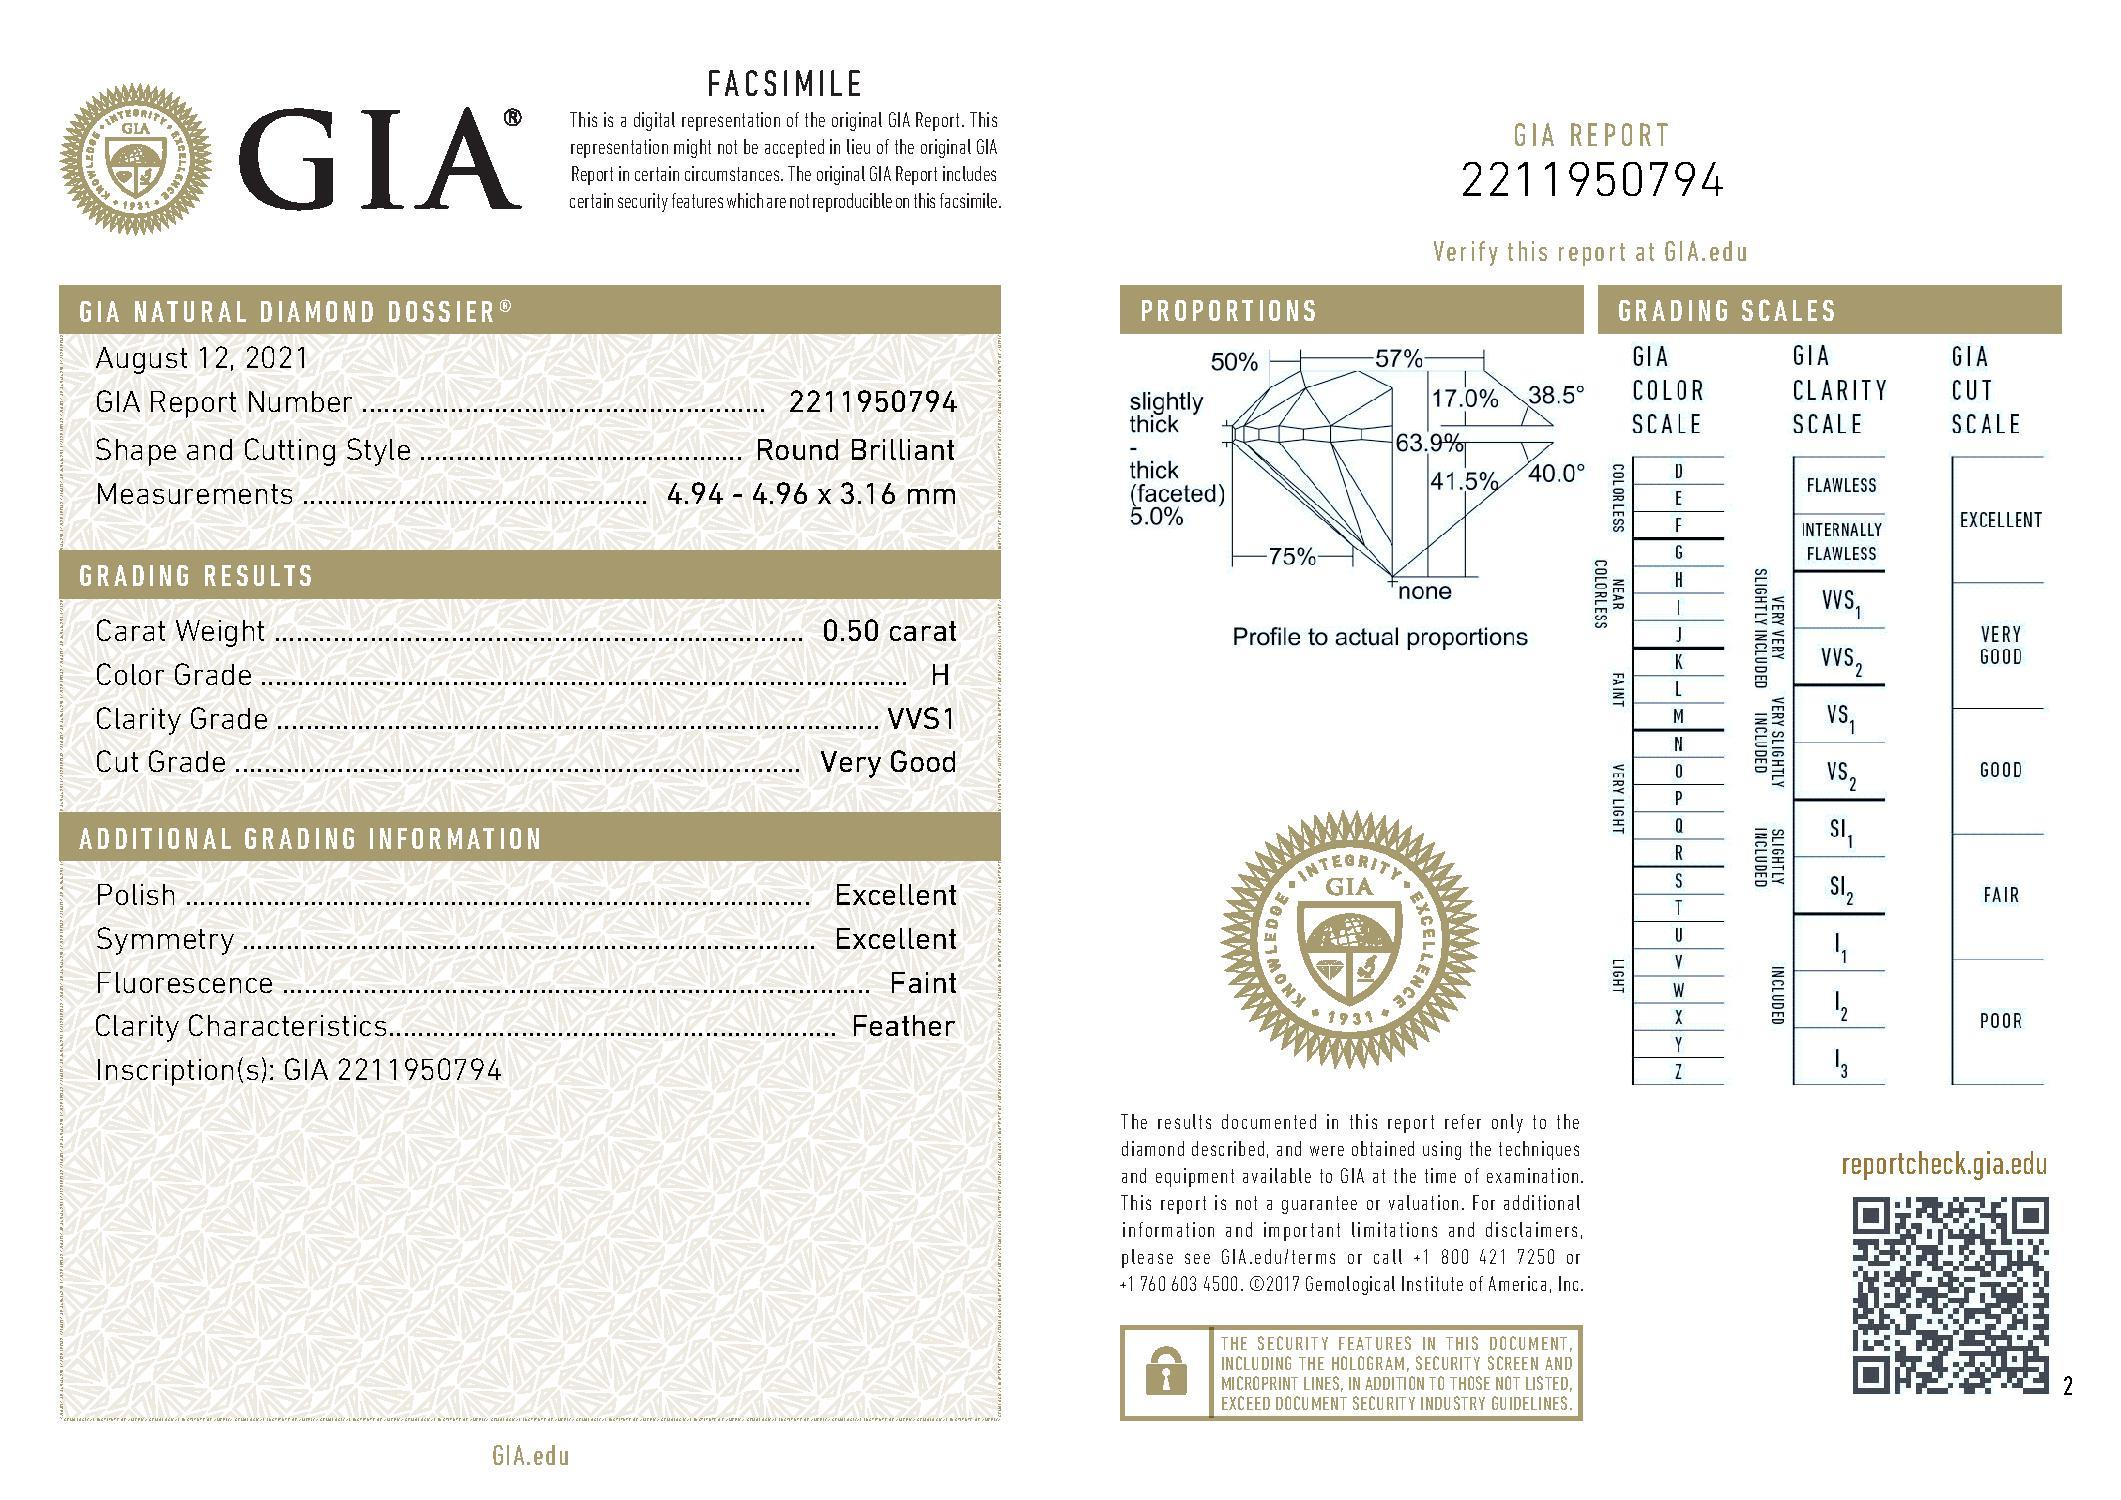 This is a 0.50 carat round shape, H color, VVS1 clarity natural diamond accompanied by a GIA grading report.